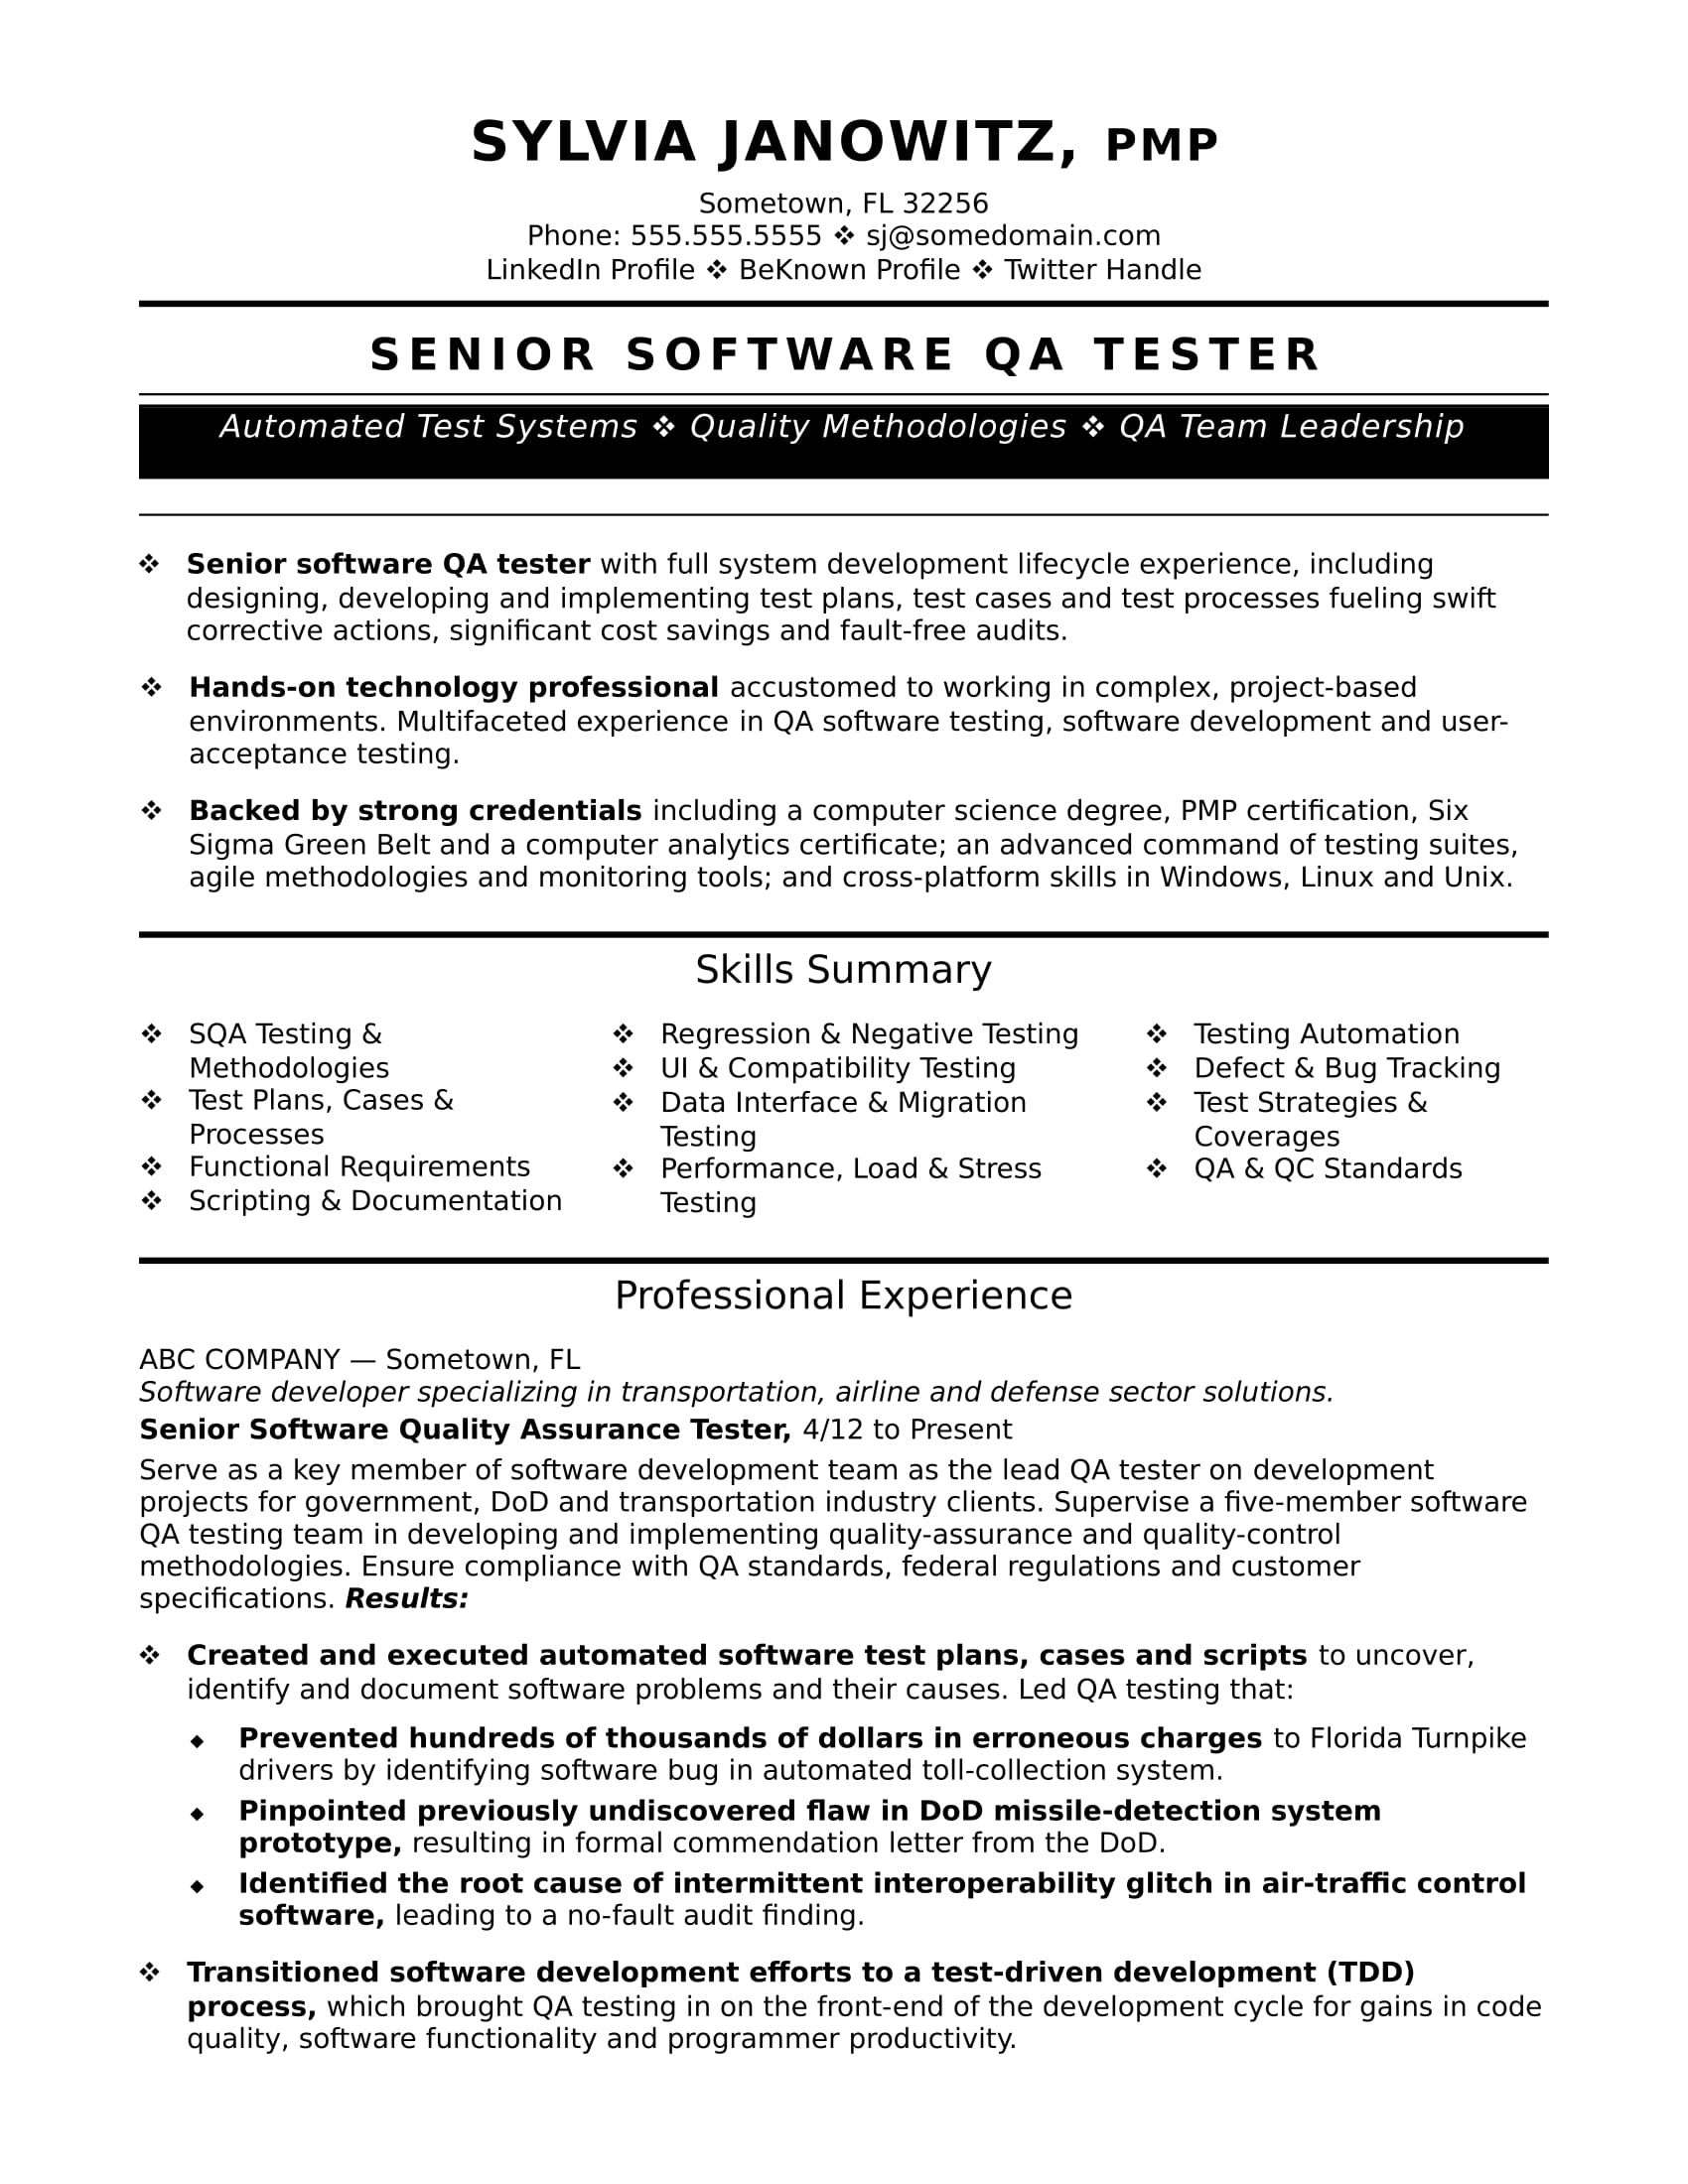 experienced qa software tester resume sample monster automation elegant templates for Resume Automation Tester Resume